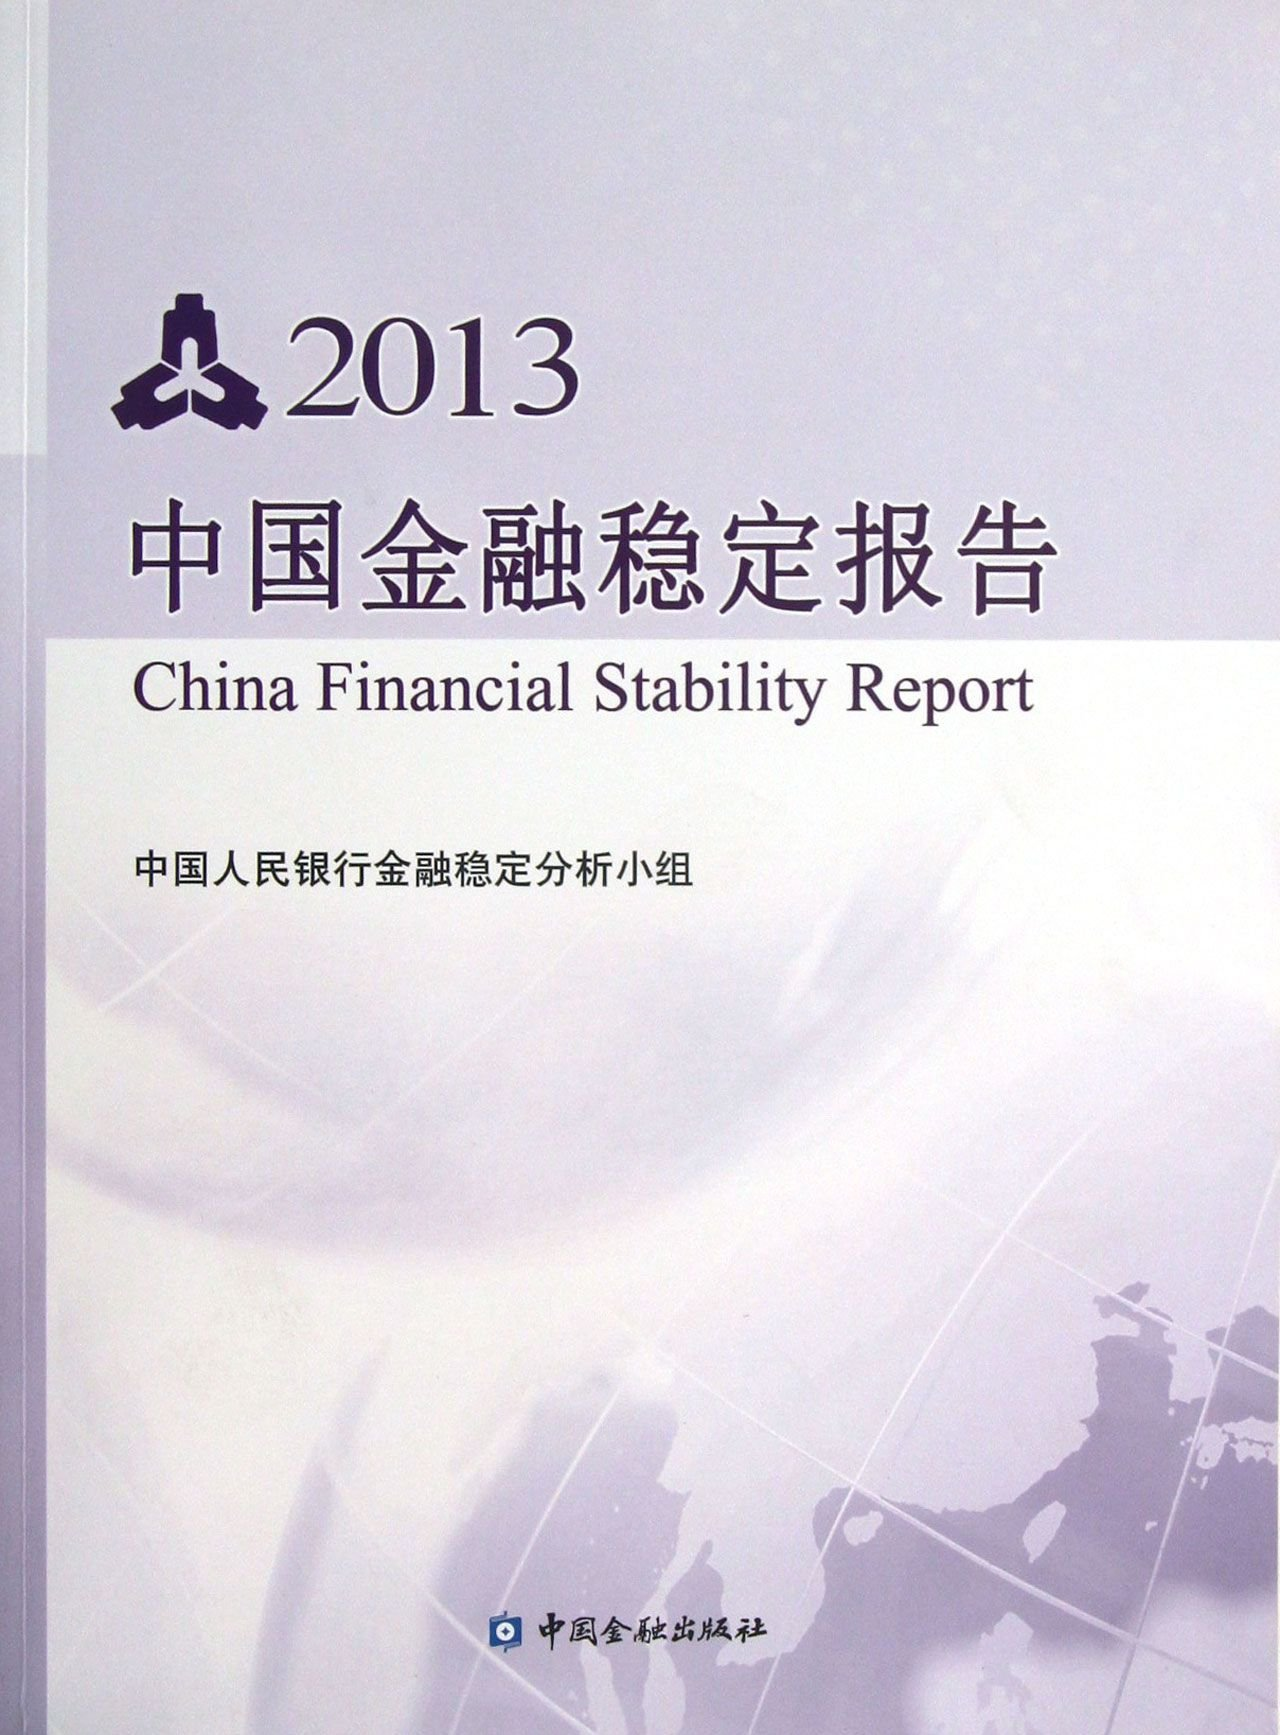 China Financial Stability Report(Chinese Edition) ebook